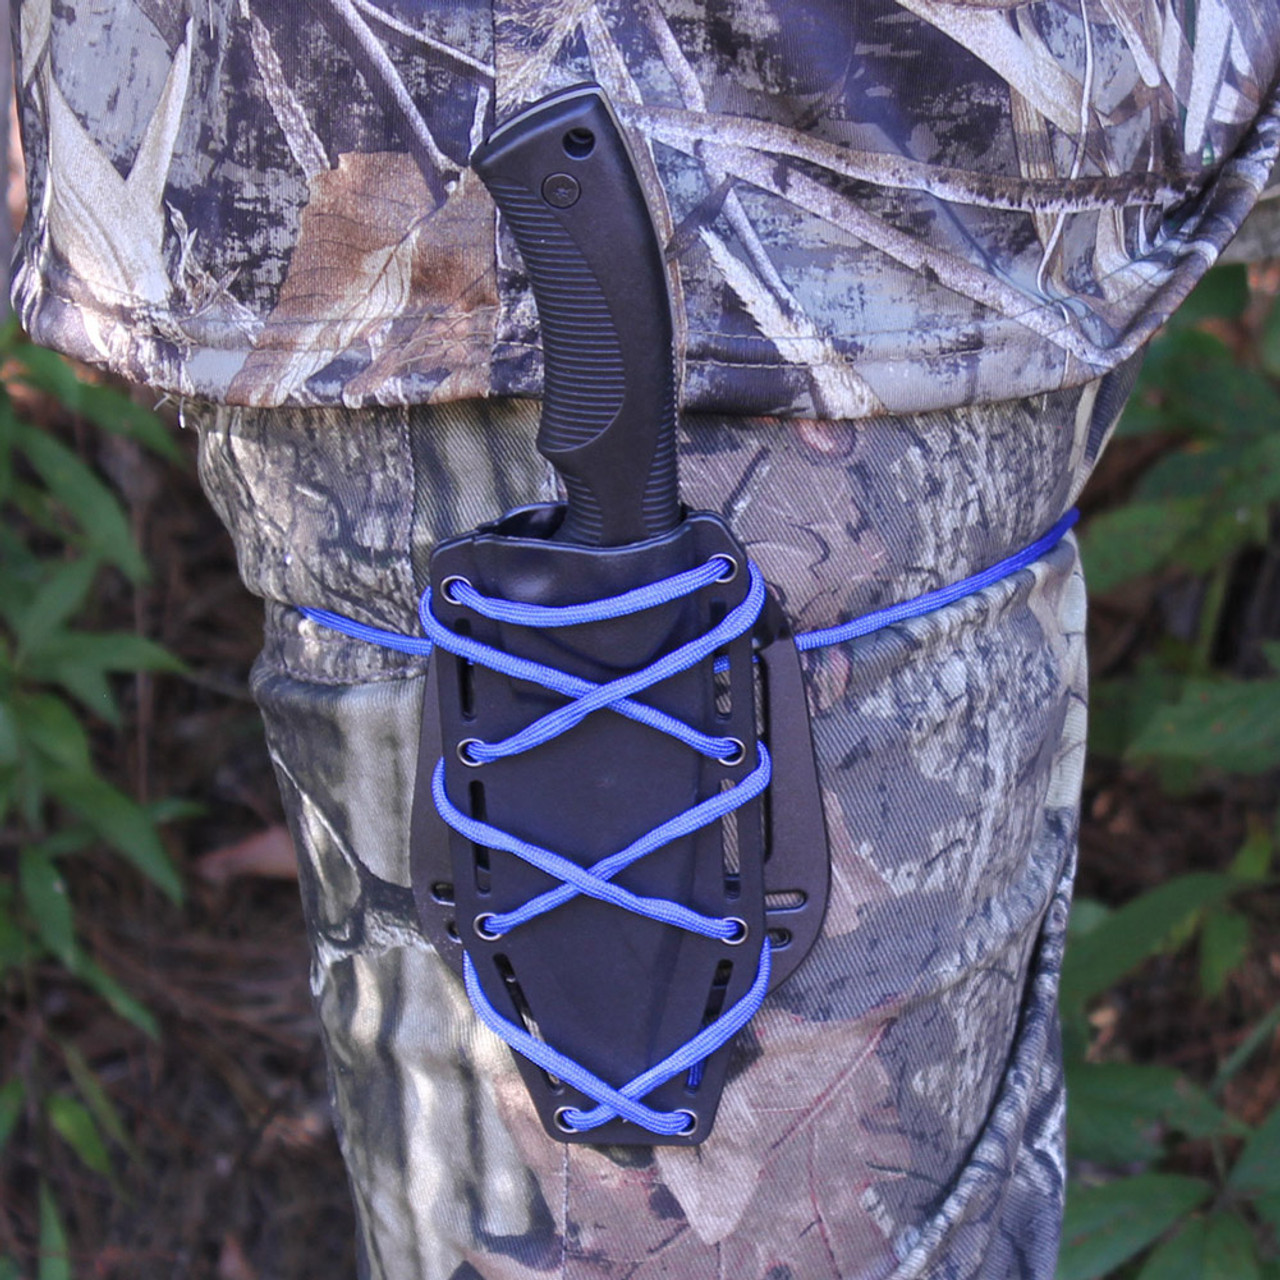 Intimidation Technique Tactical Hunting Knife with Paddle